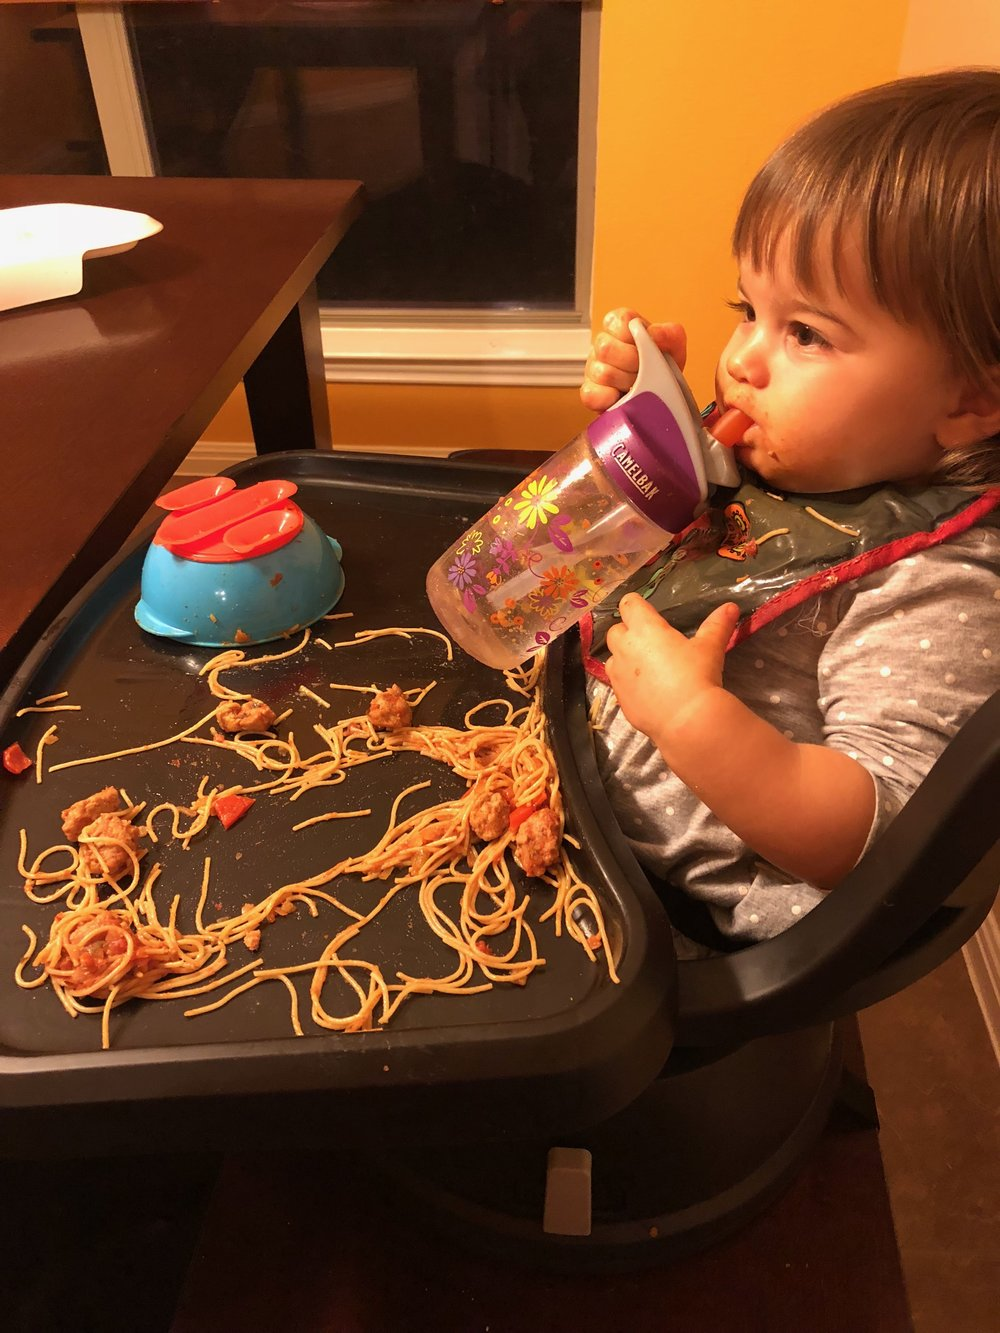 Pro tip from Adaline: Spaghetti tastes way better when you dump it out of the bowl and smear it all over your face.